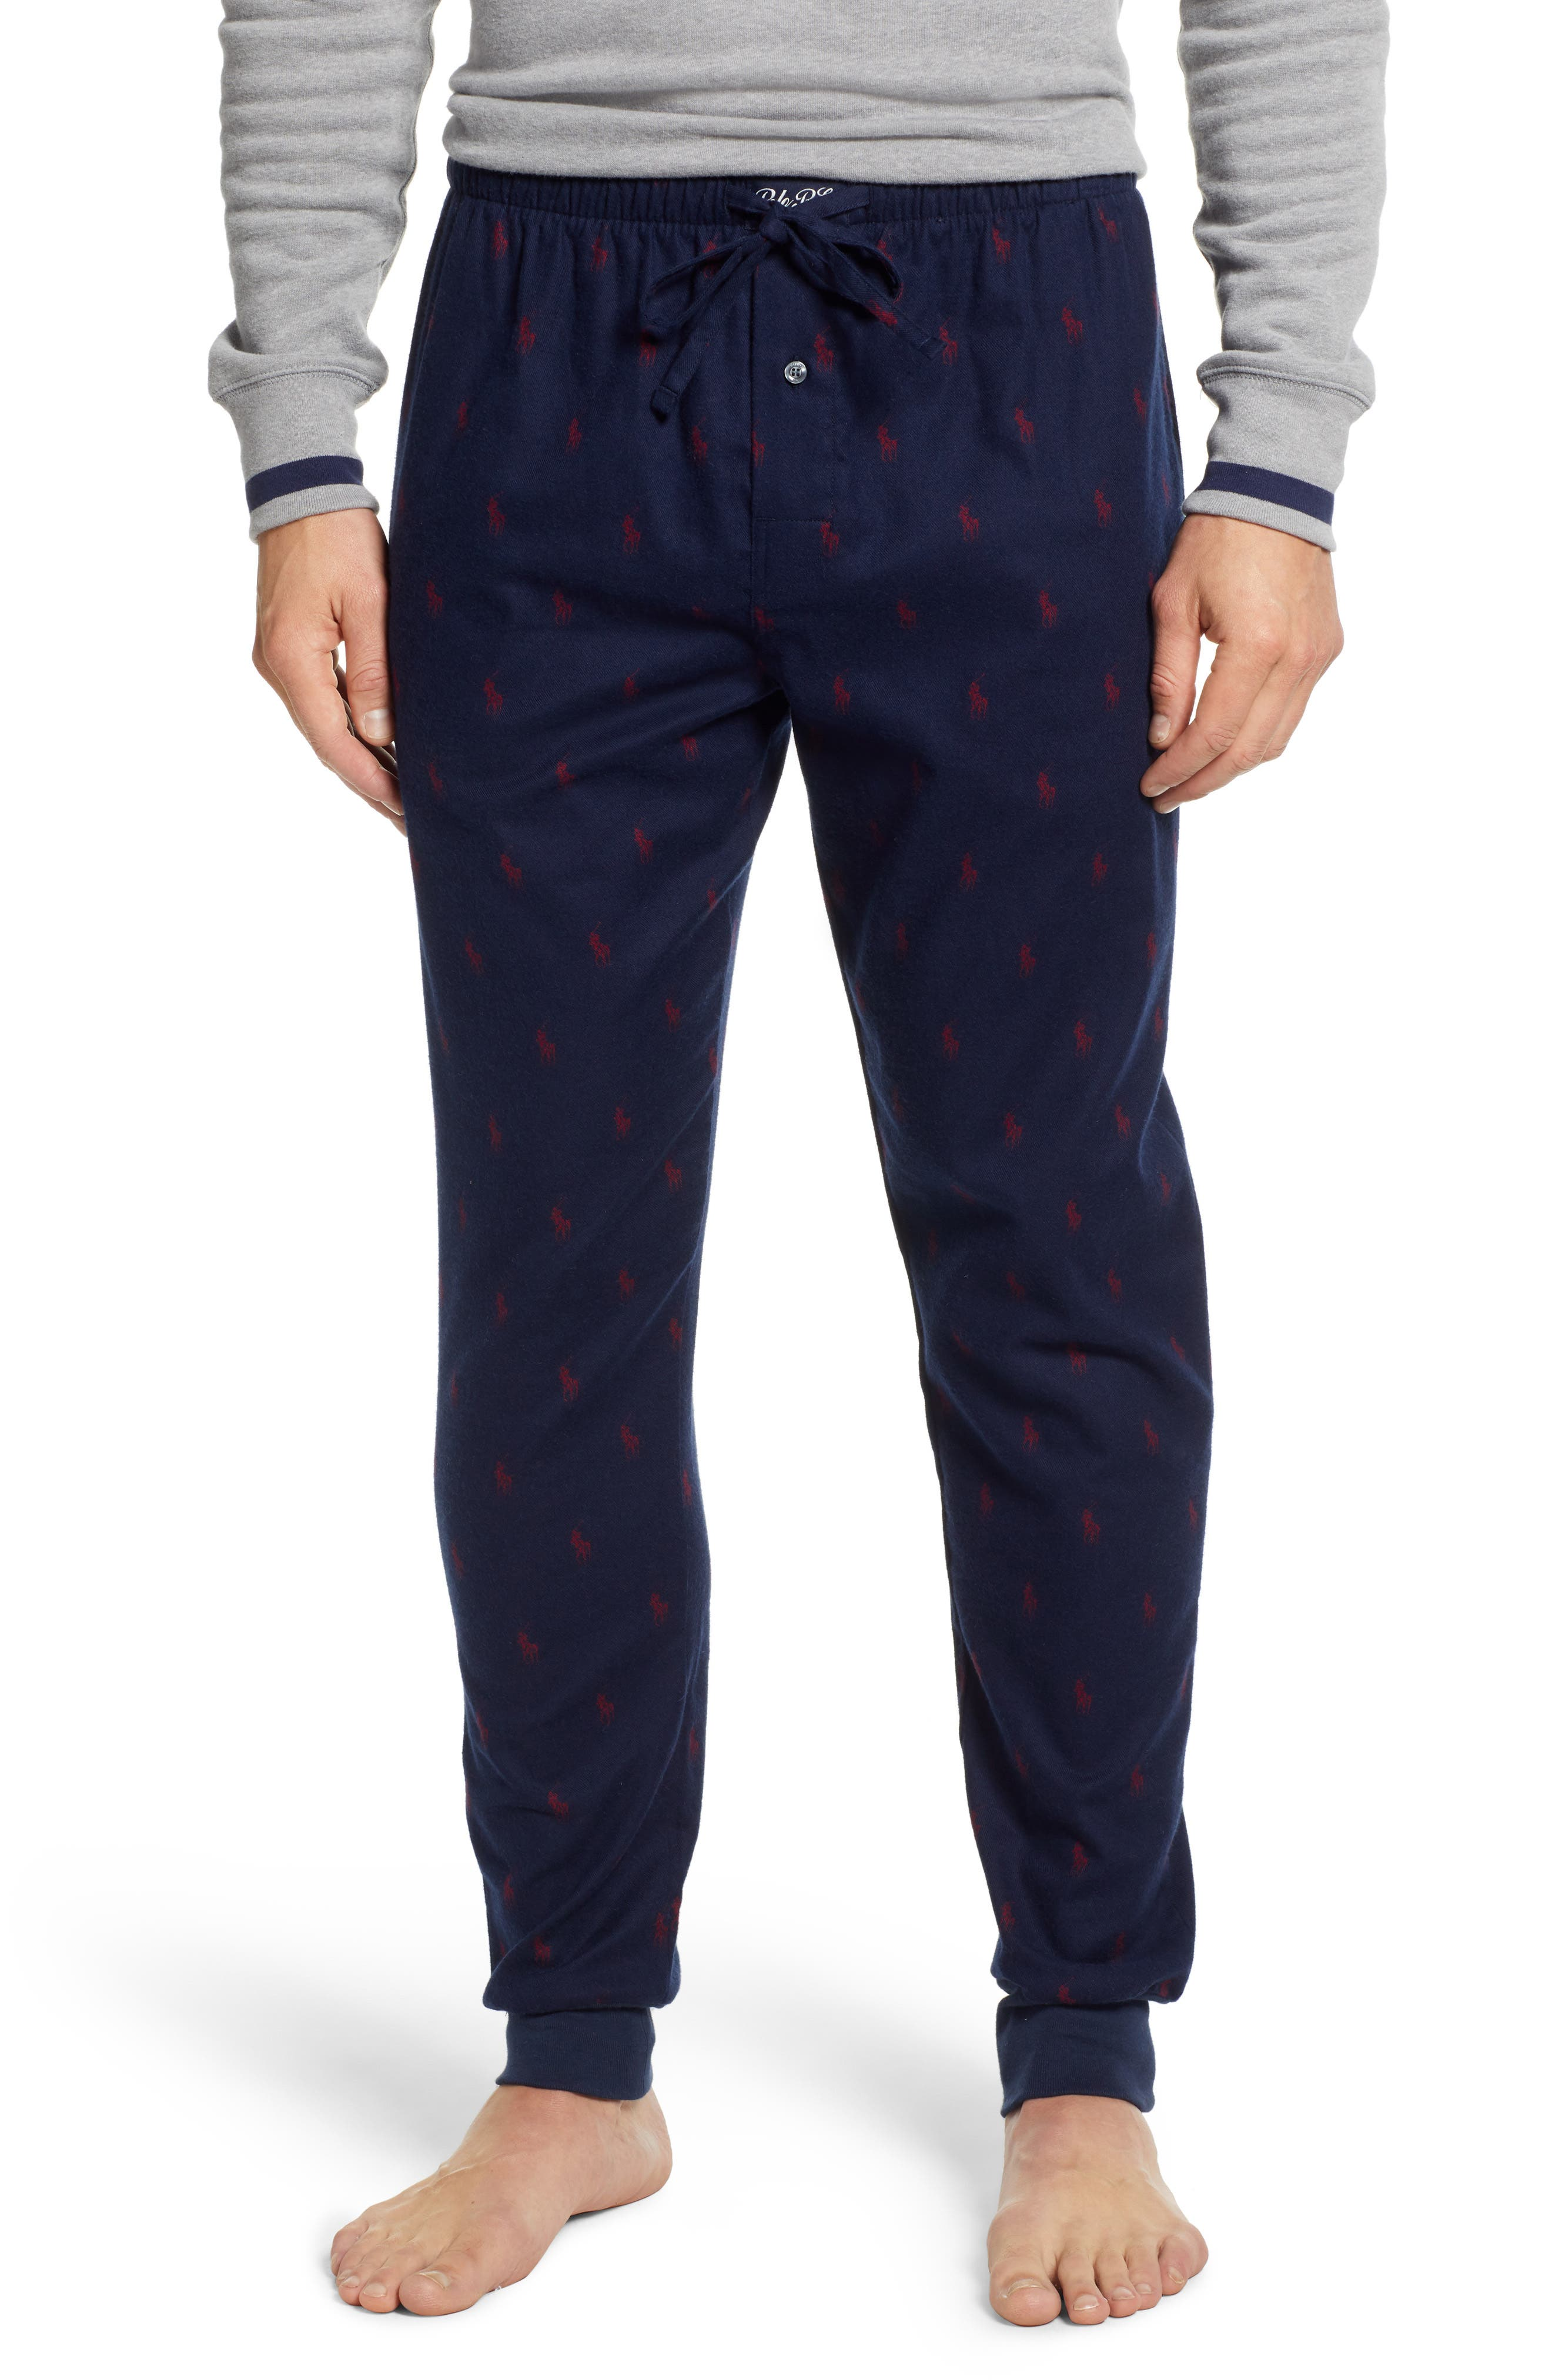 POLO RALPH LAUREN, Flannel Cotton Jogger Pants, Main thumbnail 1, color, CRUISE NAVY/ HOLIDAY RED